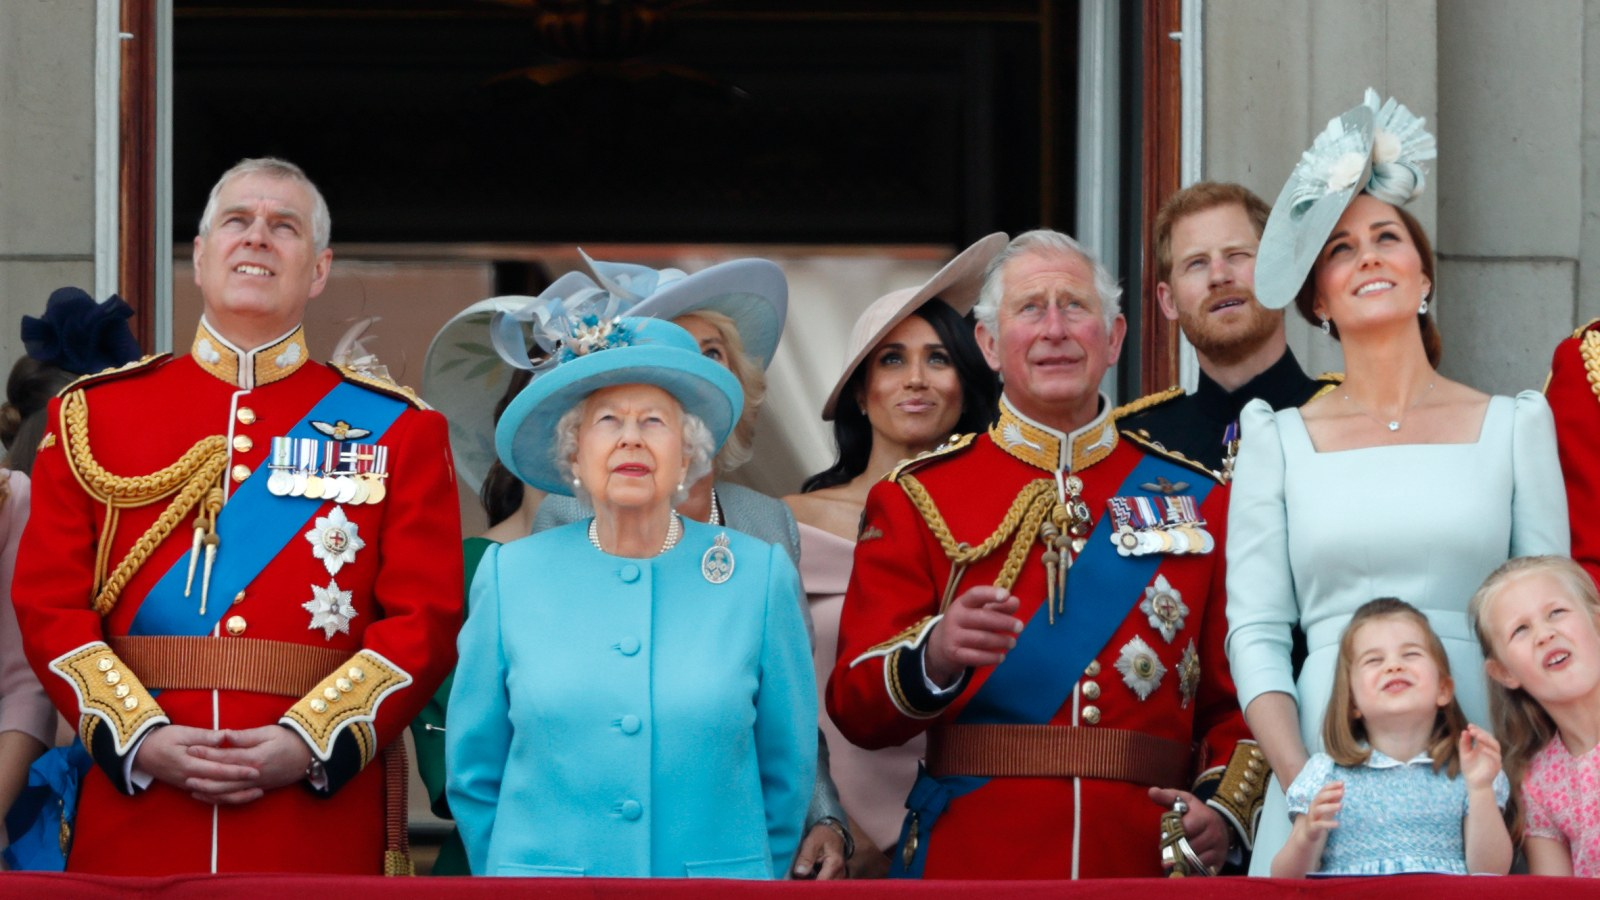 Queen Elizabeth II Official Birthday: Why Does the Queen Have Two ...